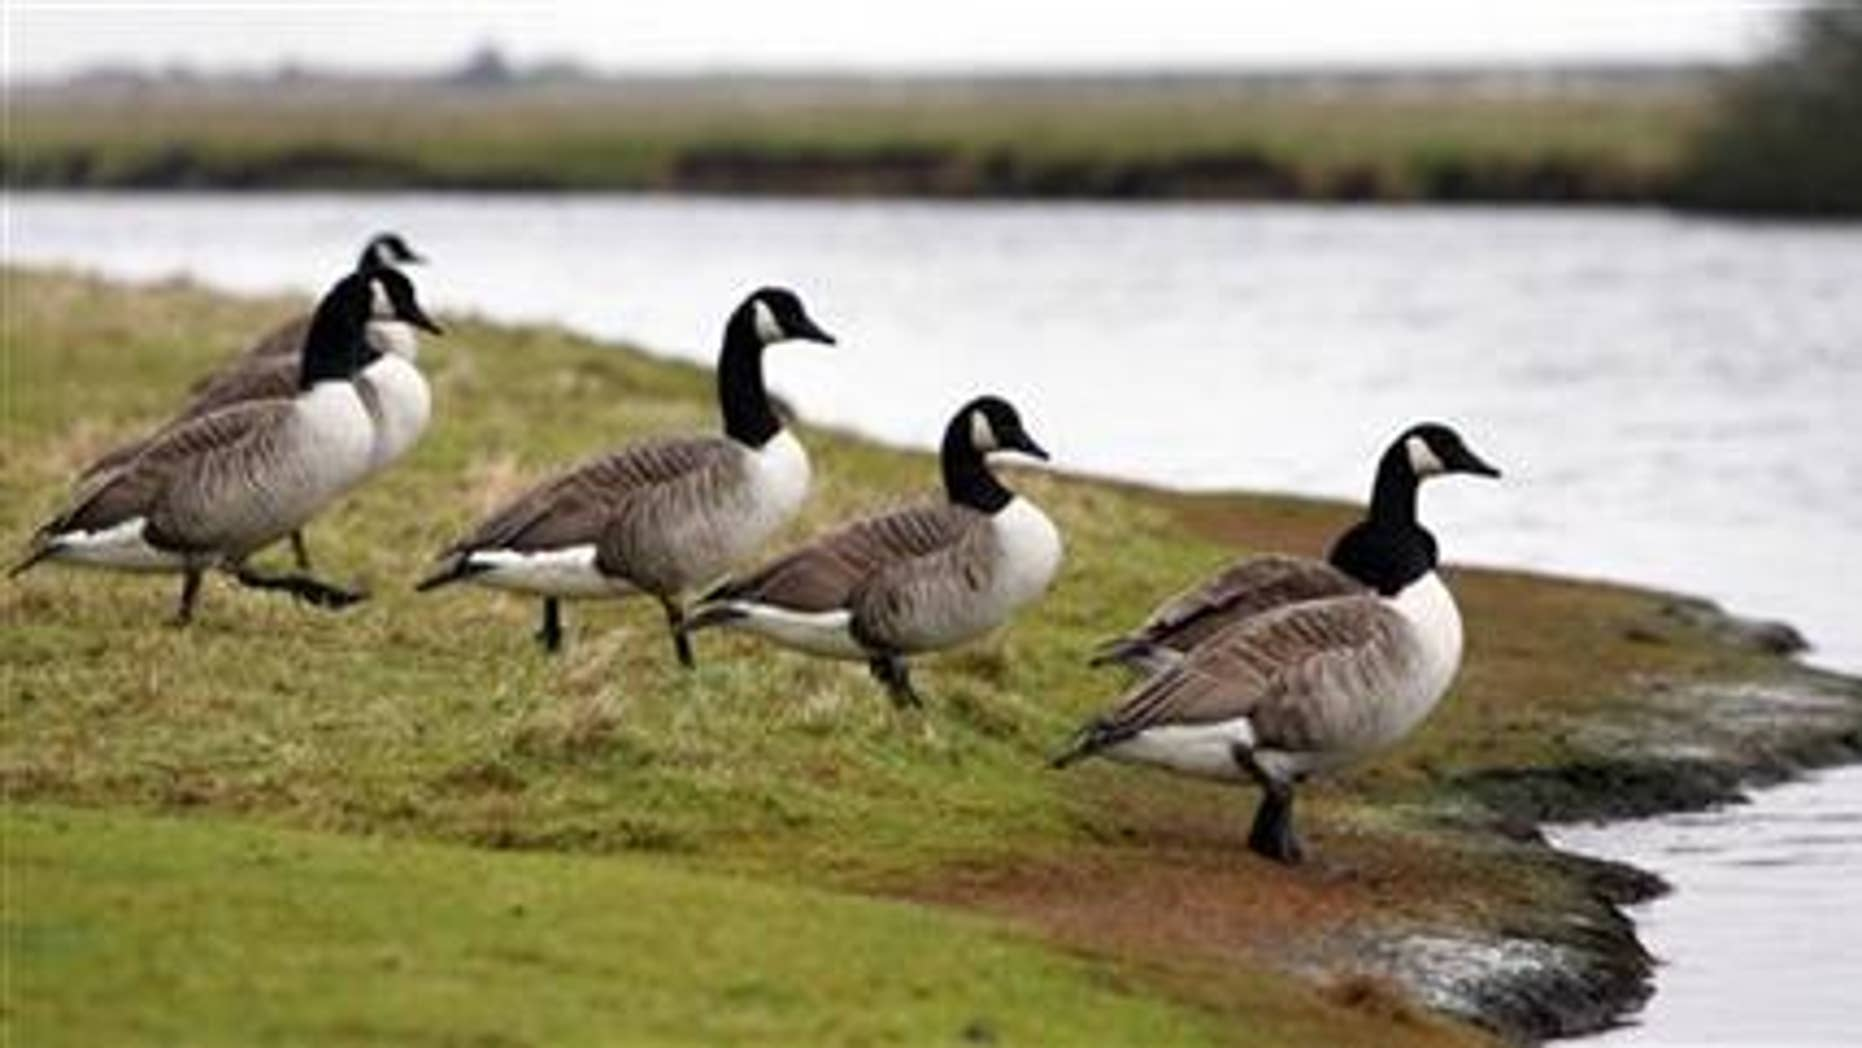 Canada geese walk towards the water at Cuckmere Haven in southern England.